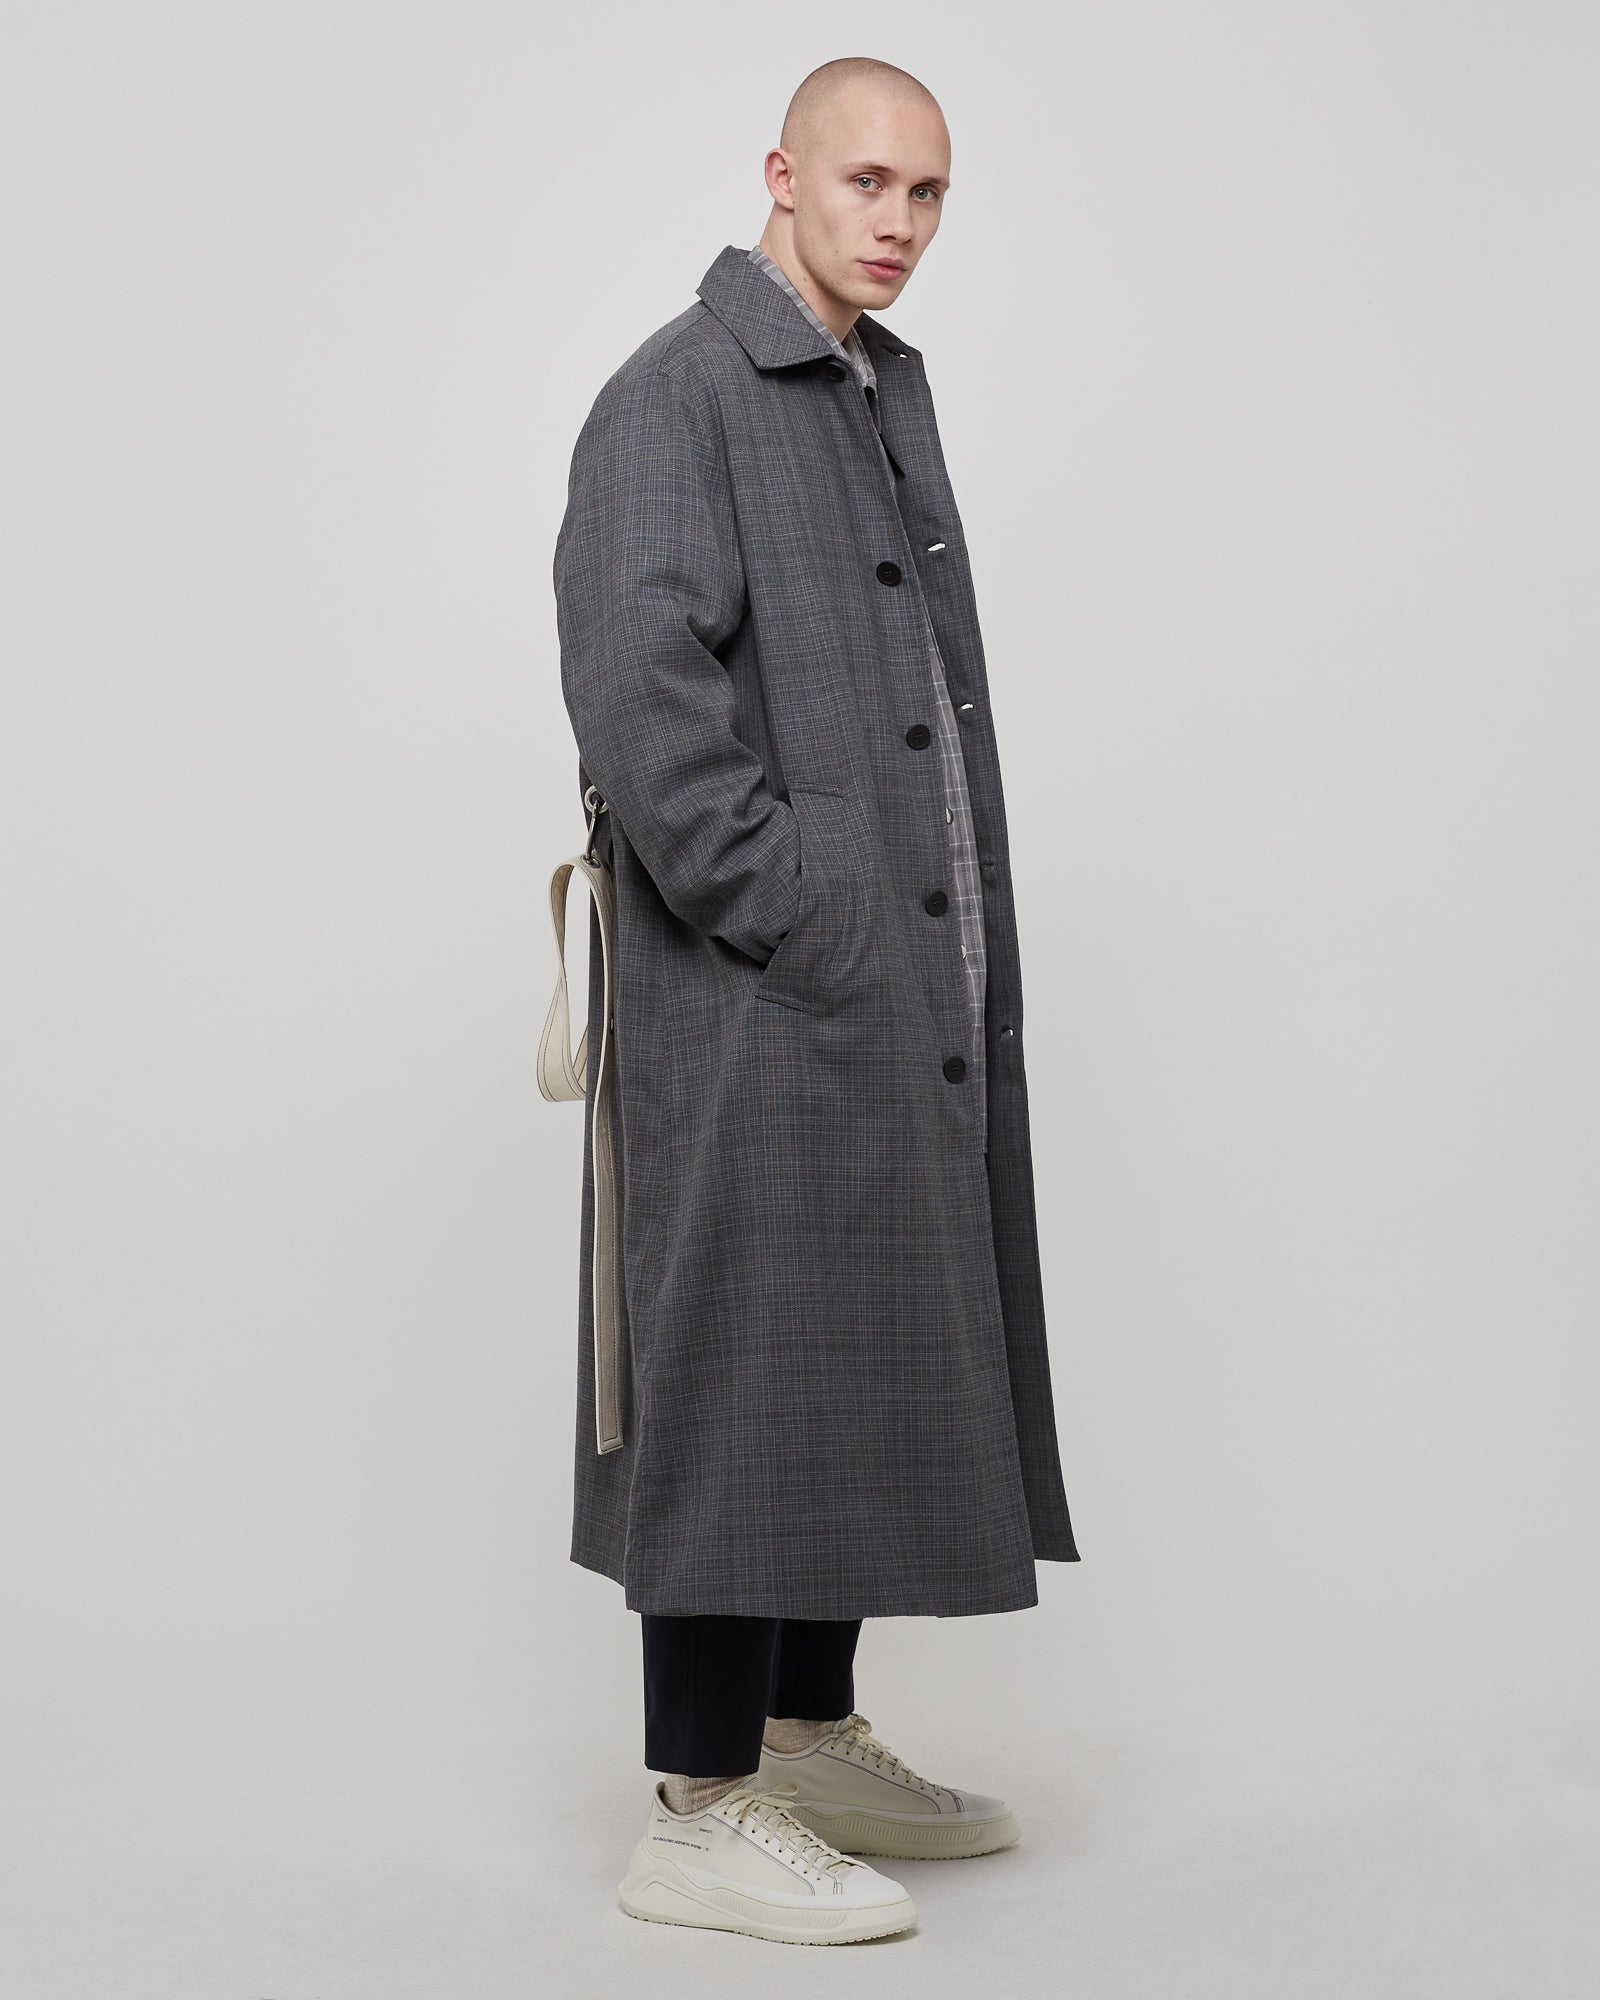 Alka Coat in Heather Gray